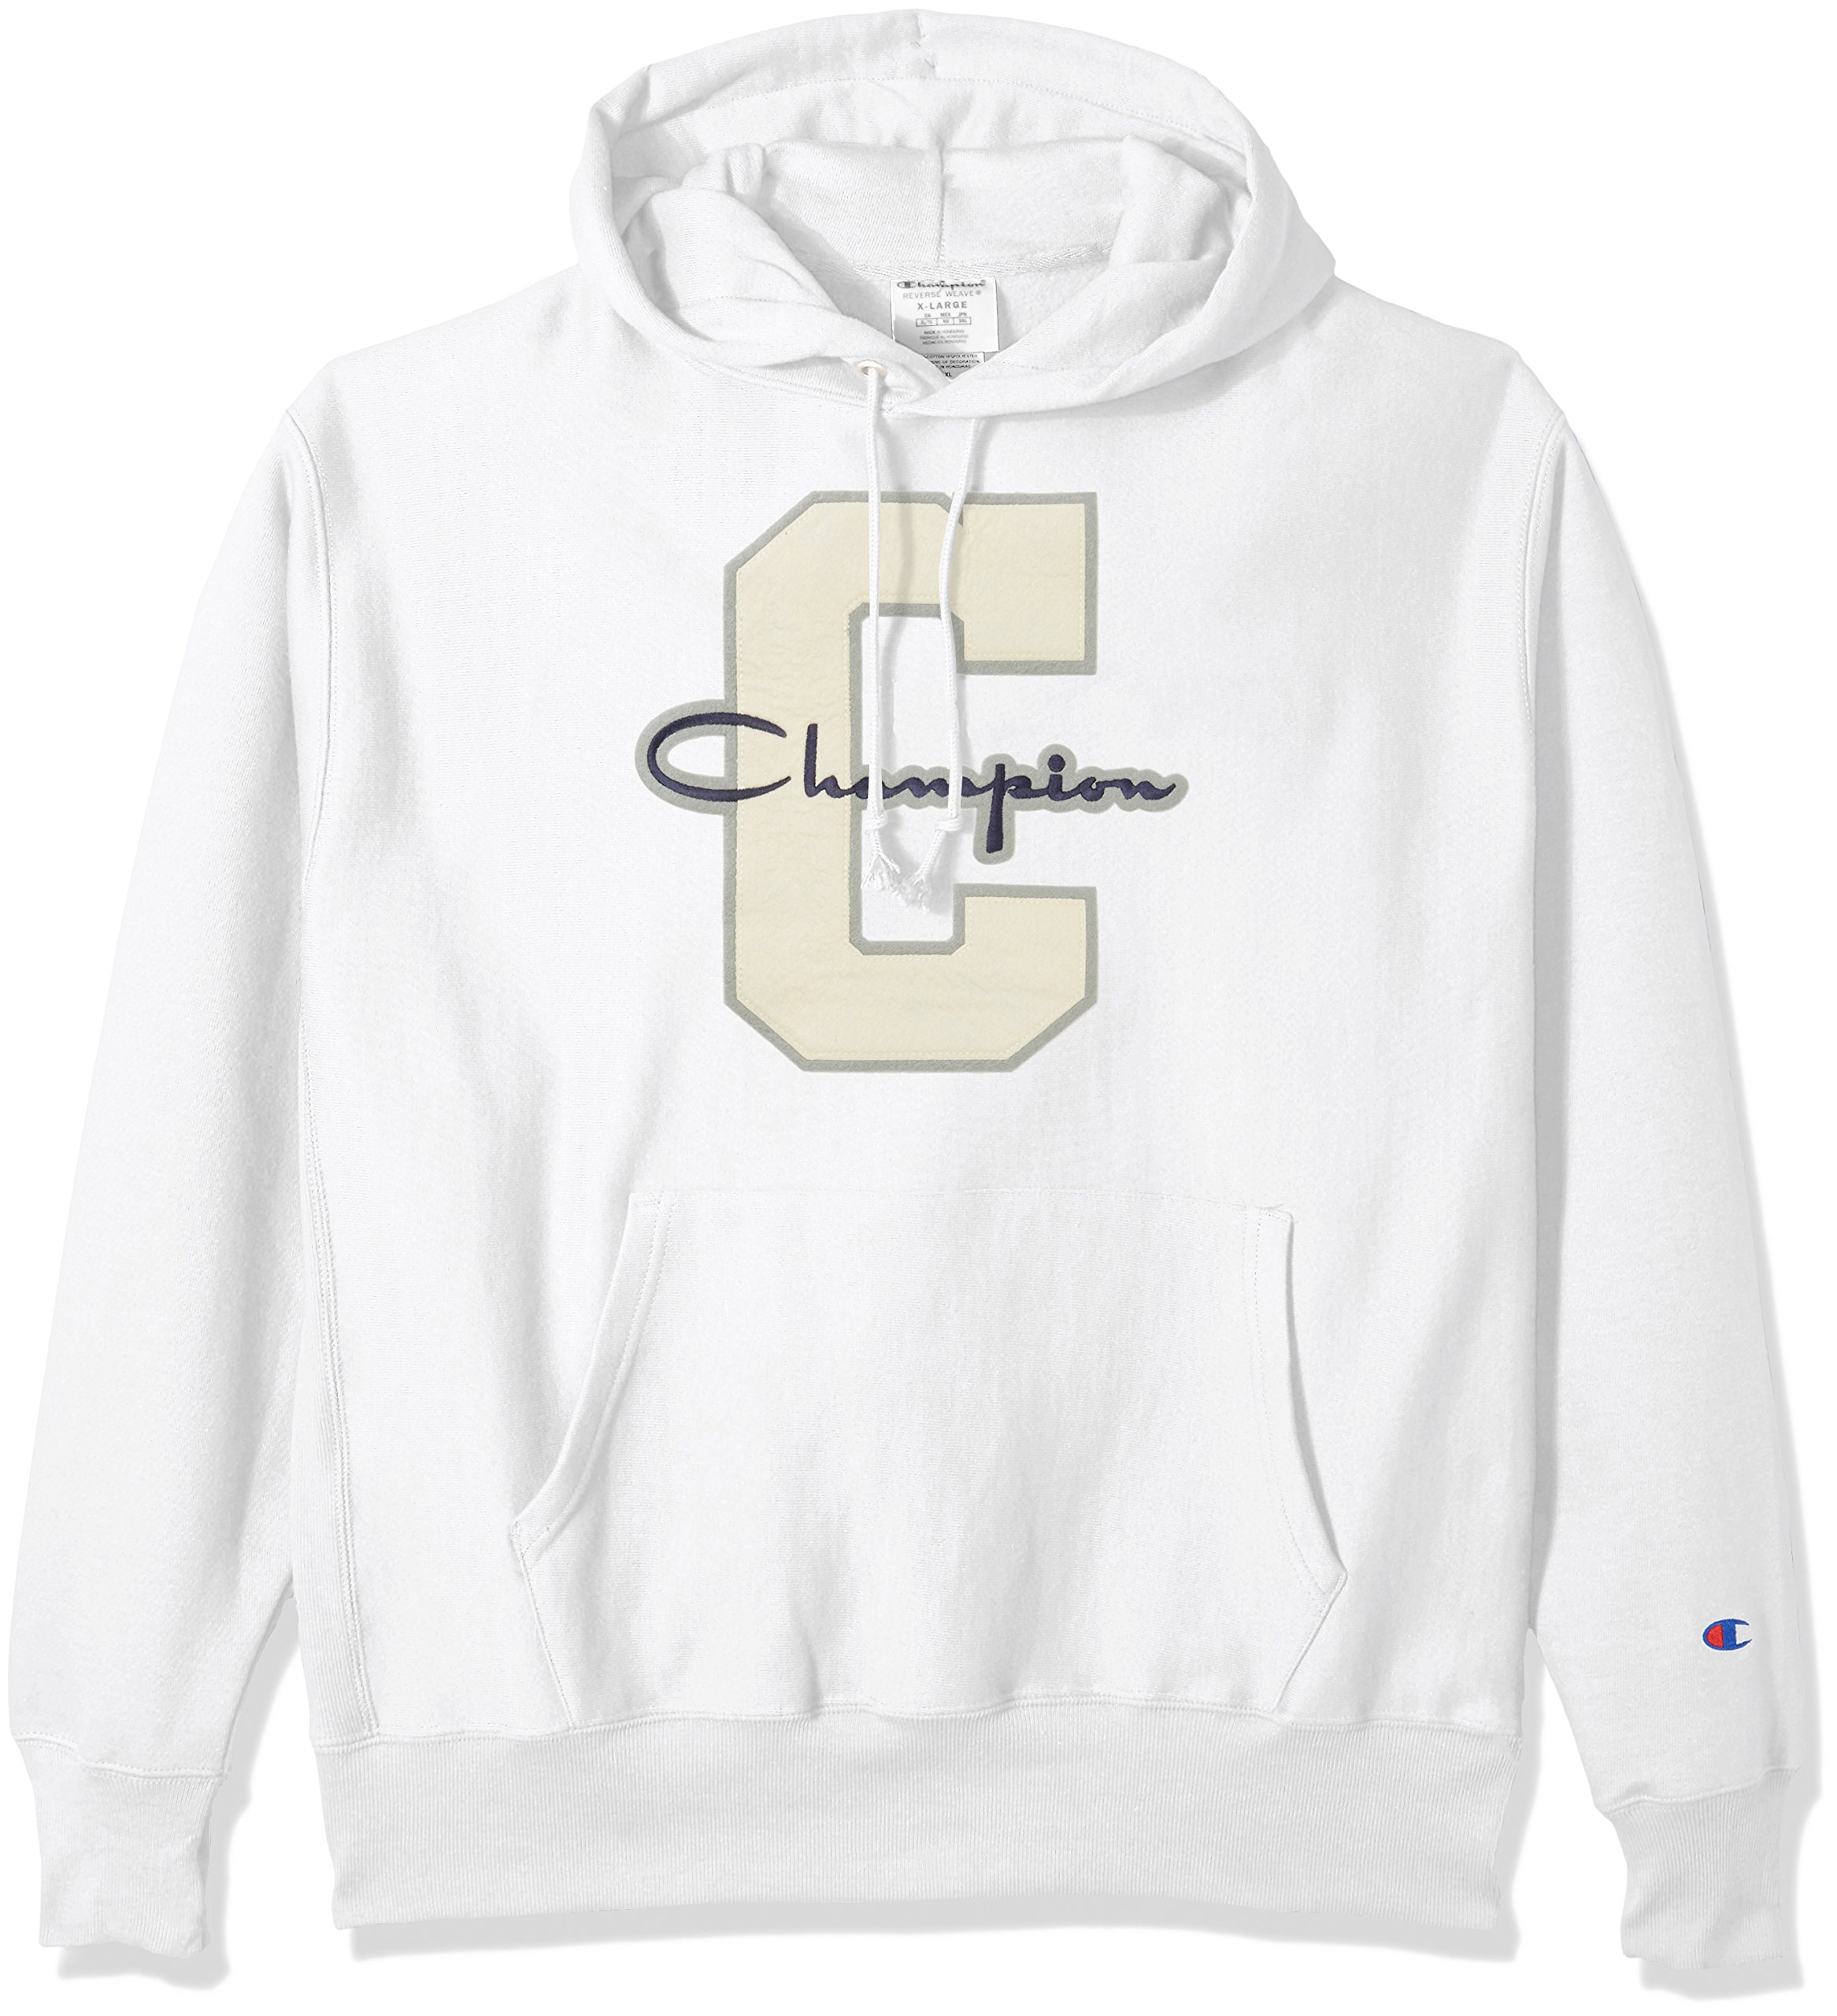 Champion LIFE Men's Reverse Weave Pullover Hoodie, White/Champion Script/c Logo, 3X Large by Champion LIFE